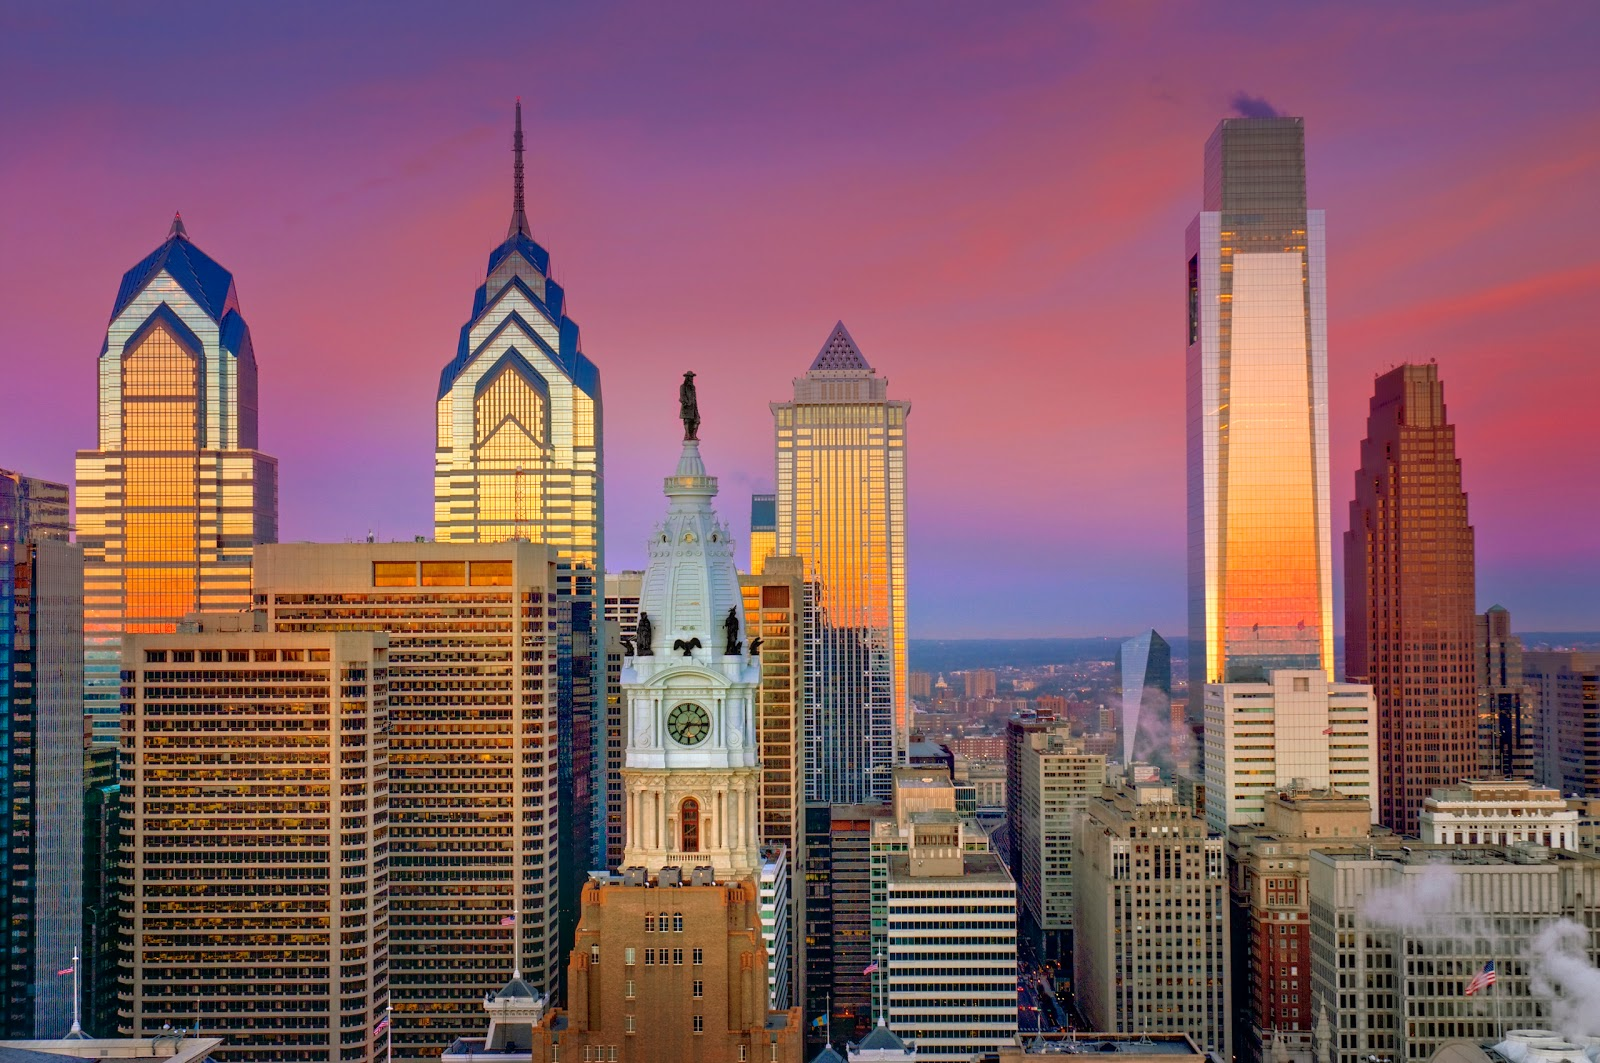 Philly adult images 2